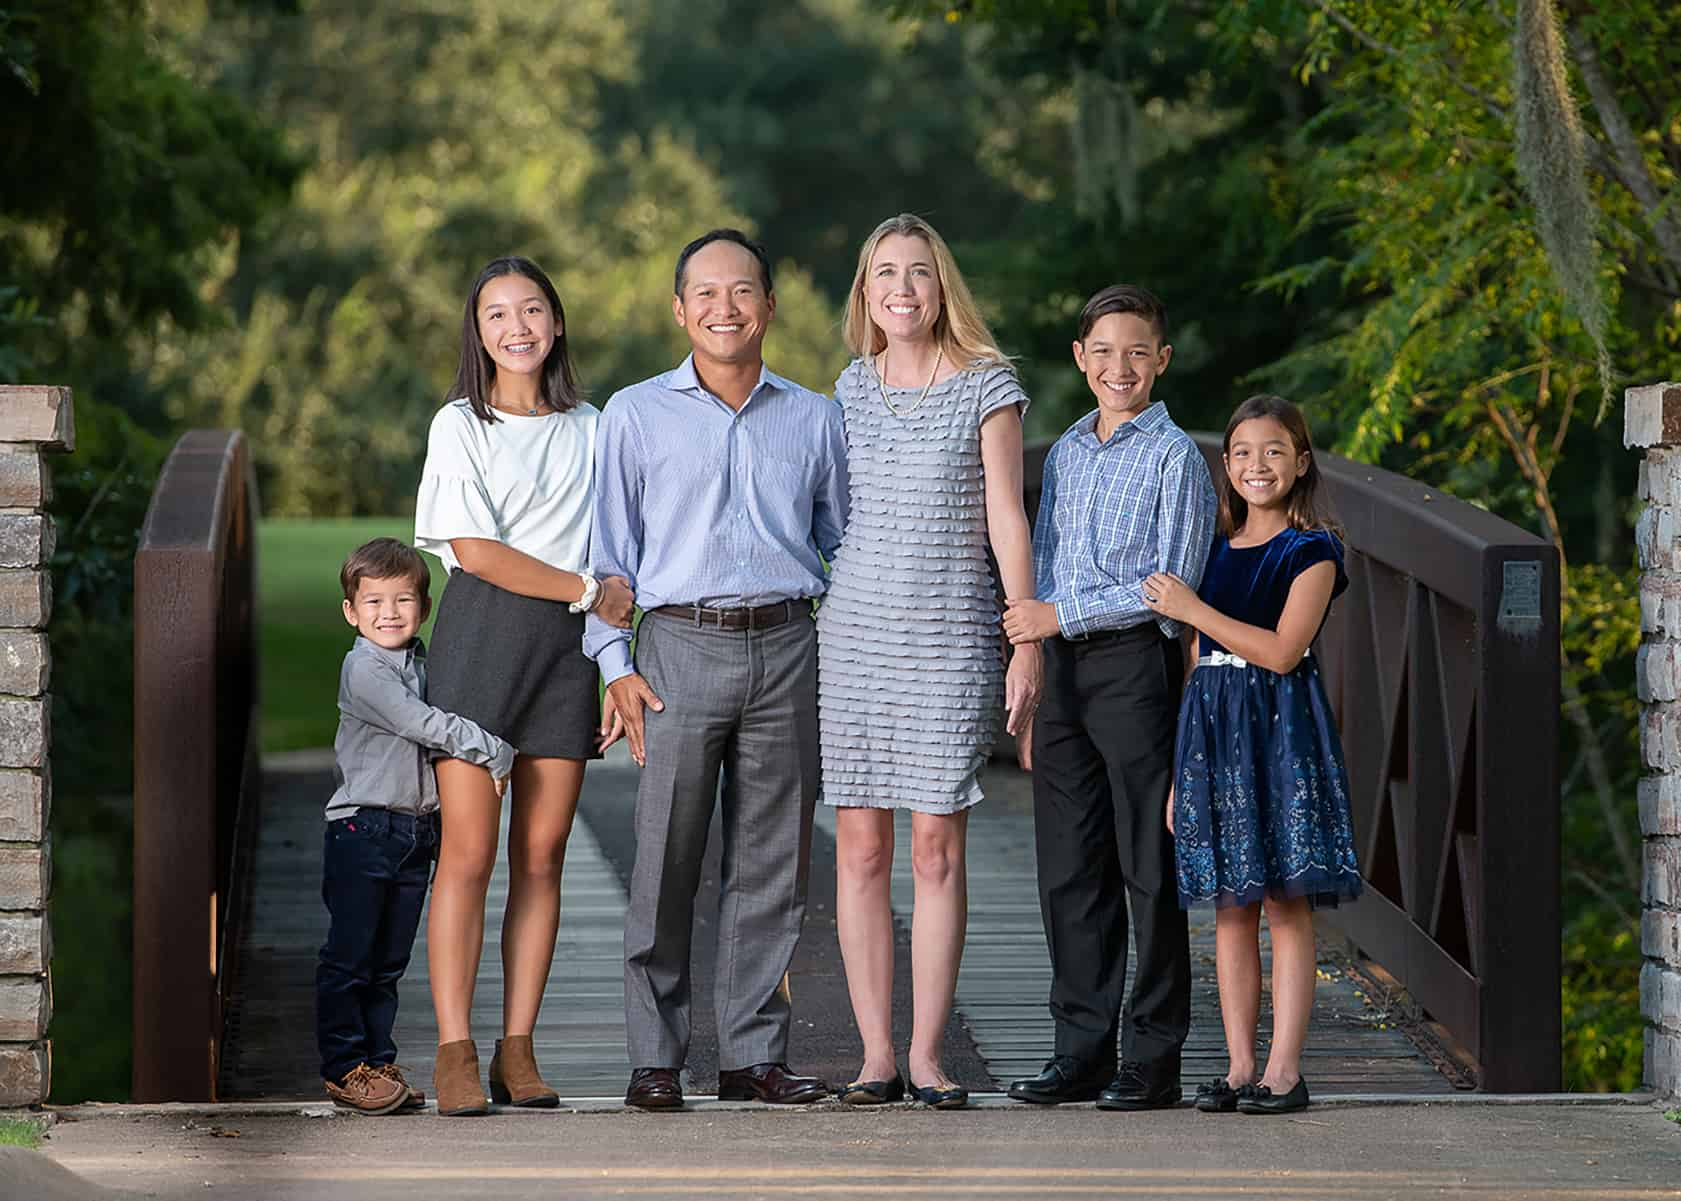 Family of 6 at golf course for photoshoot